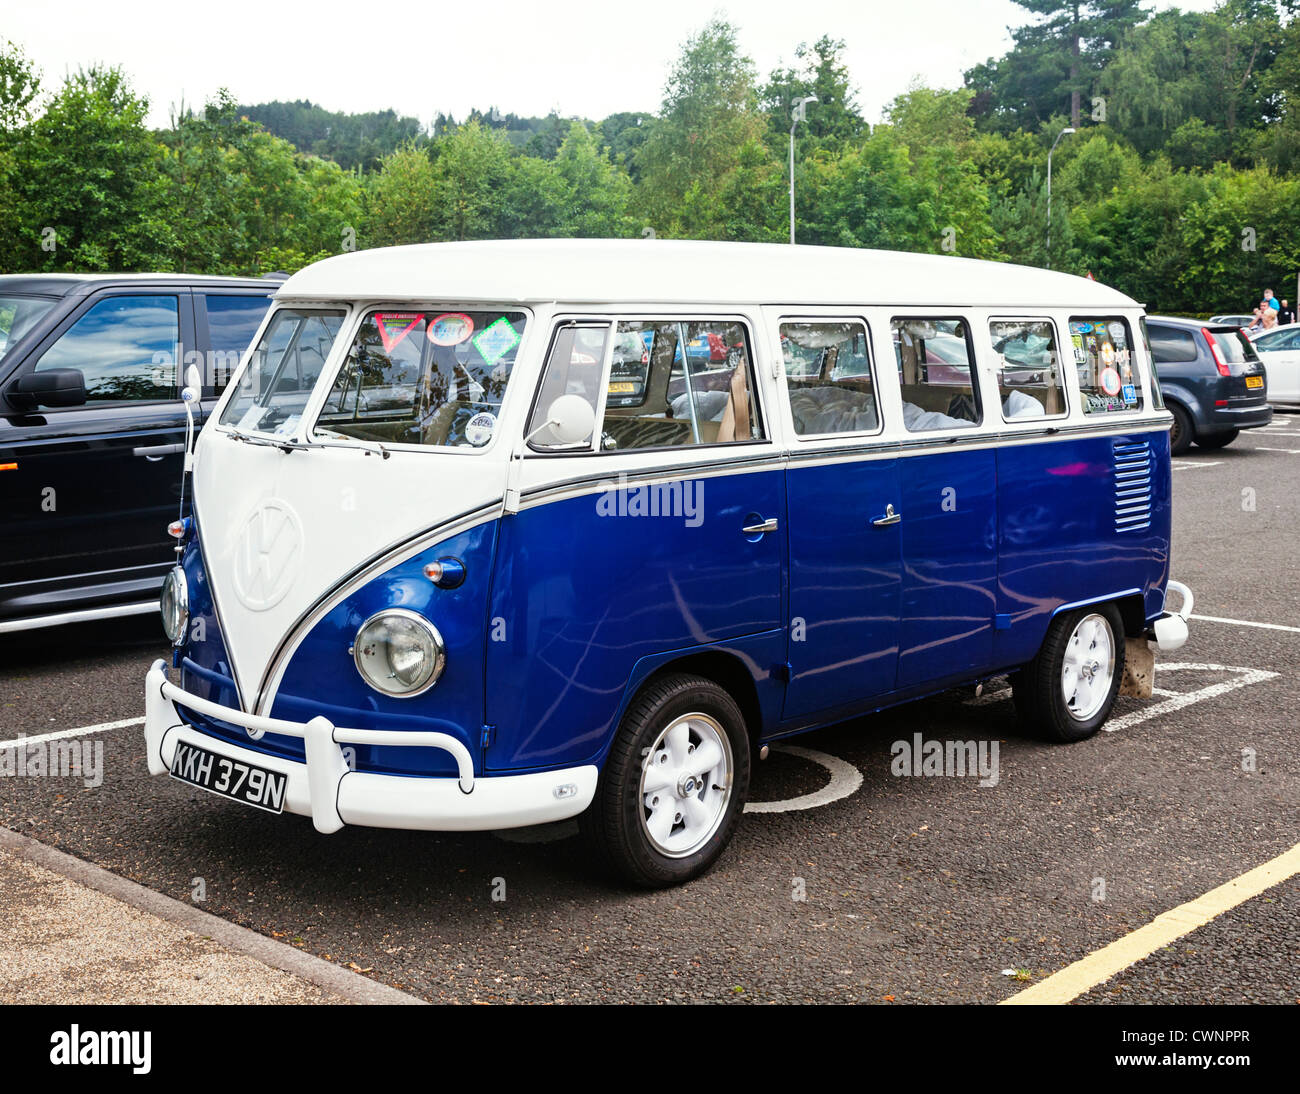 44ea3bd553 An old classic blue and white Volkswagen Kombi camper van. - Stock Image